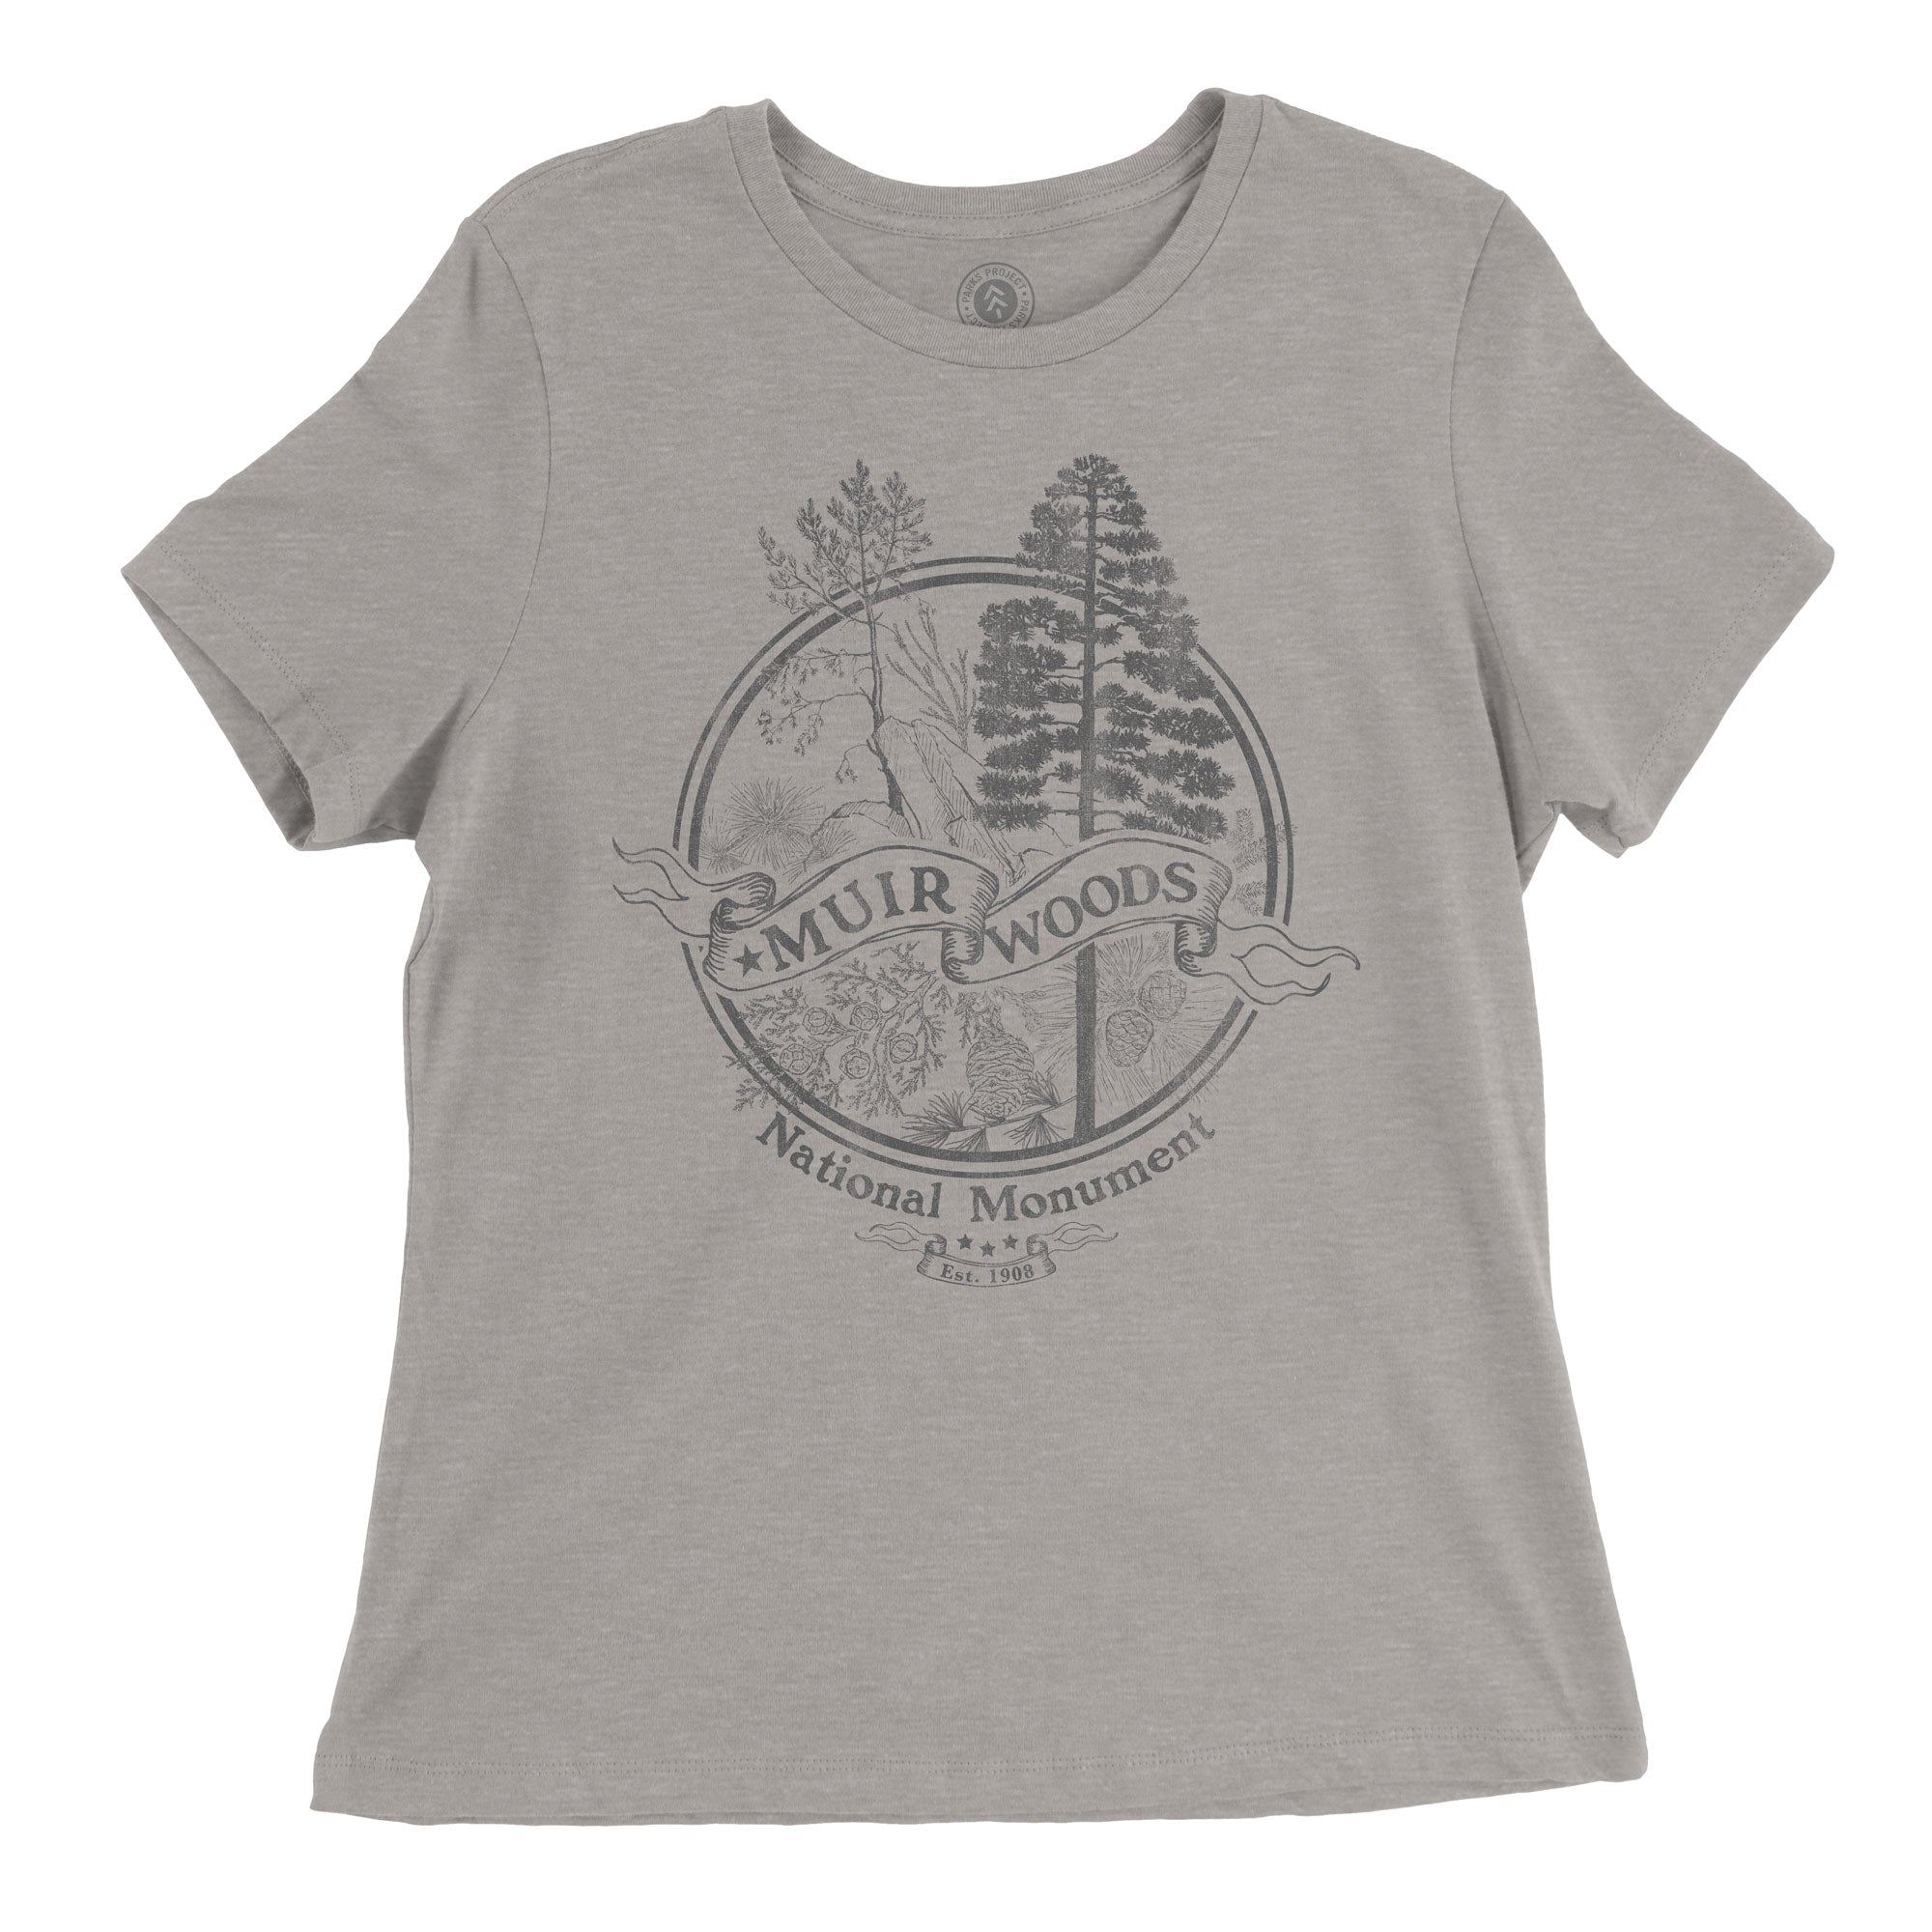 Muir Woods Sprout Women's Tee | Parks Project | National Park Tees